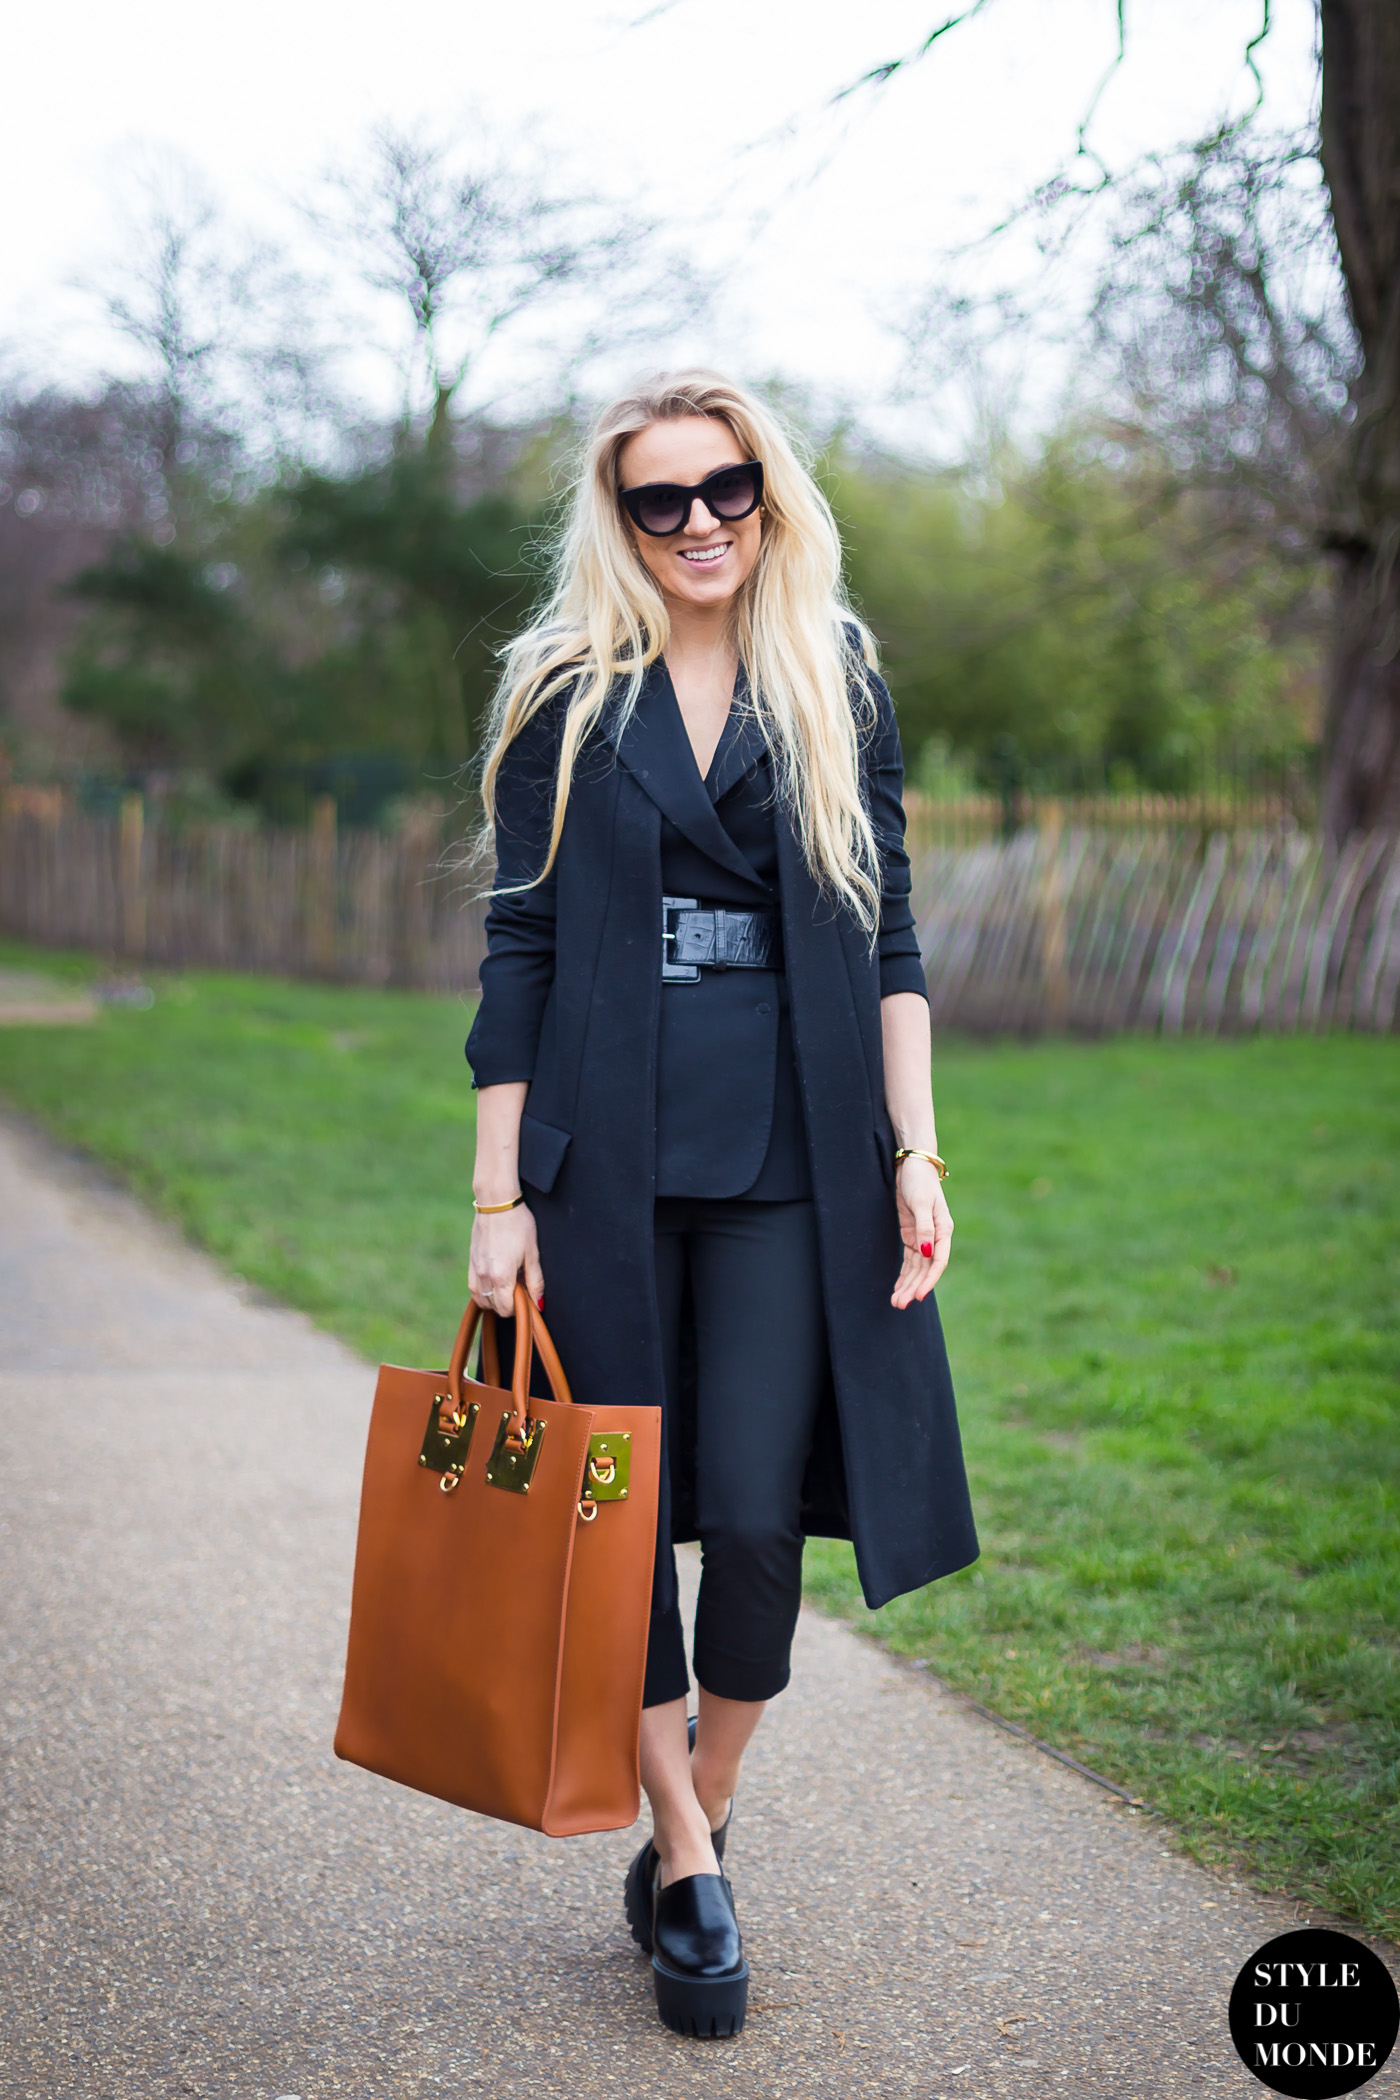 Sandra Hagelstam 5inchup Street Style Street Fashion by STYLEDUMONDE Street Style Fashion Blog